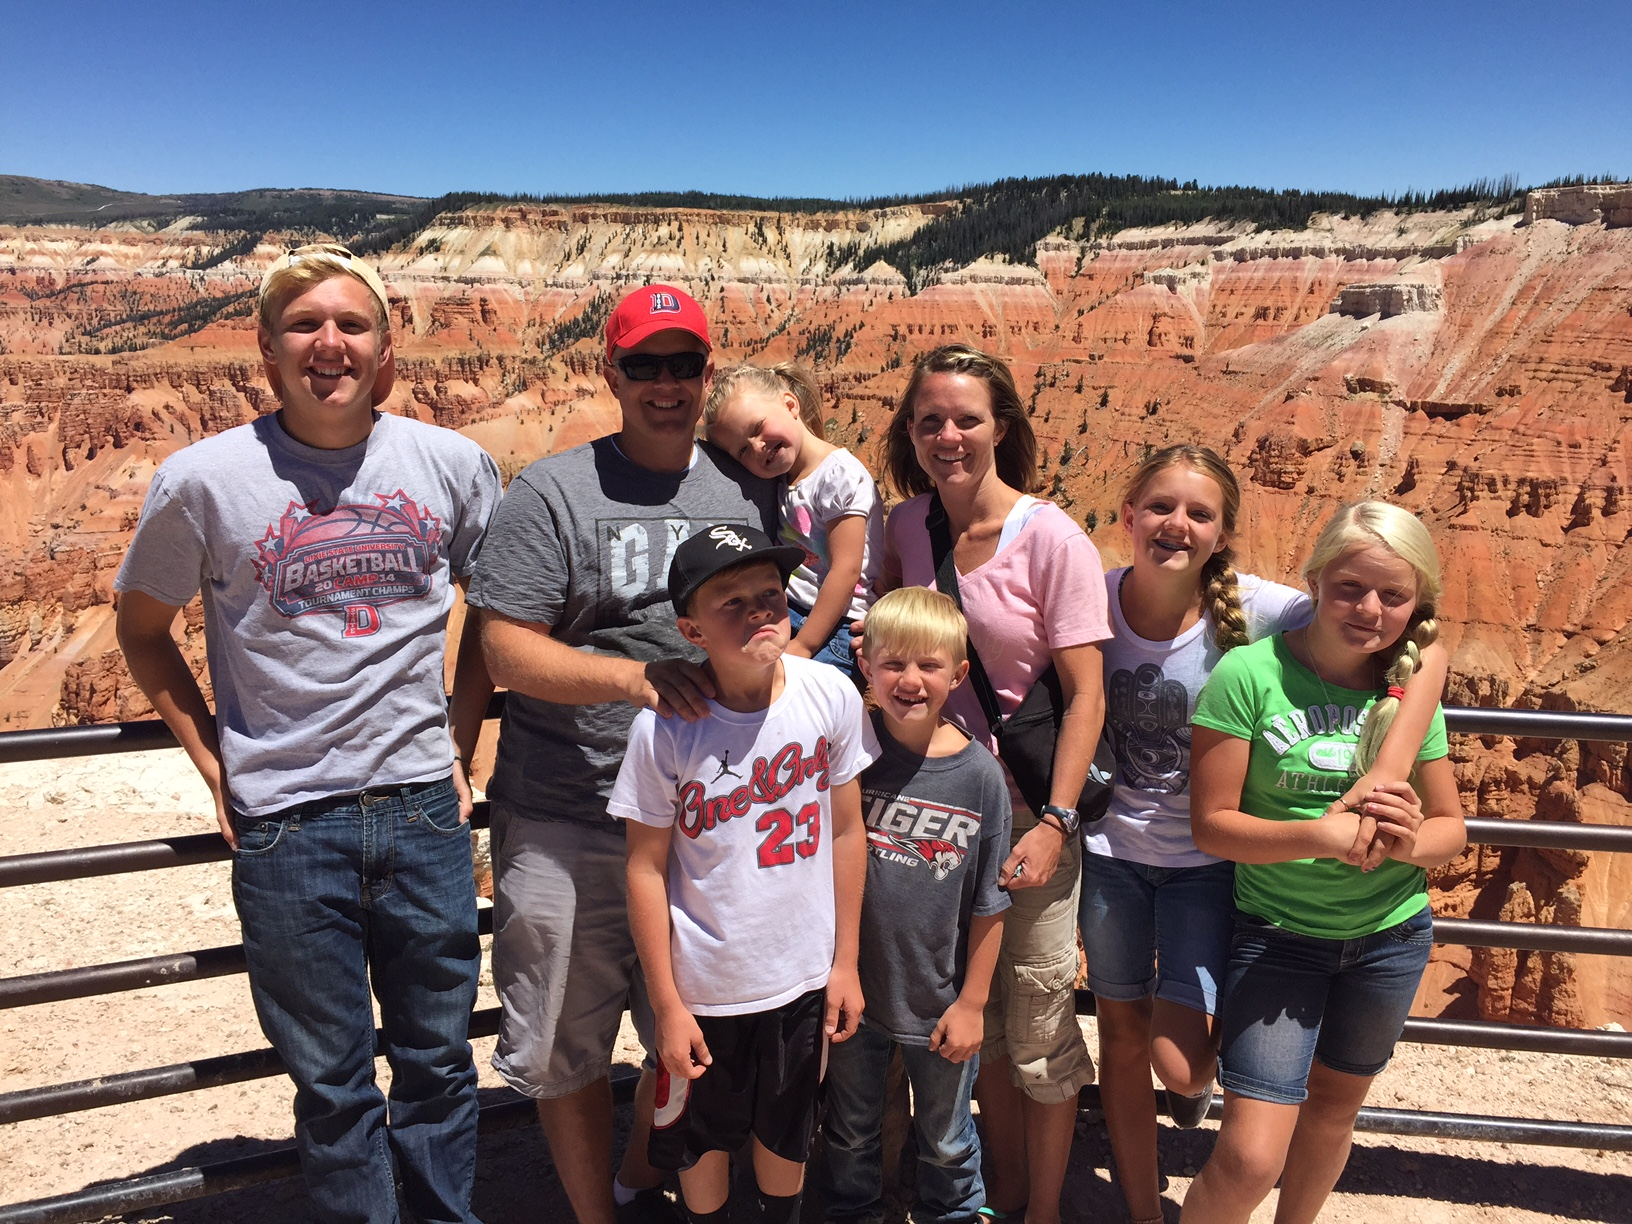 Micah Gubler and family | Submitted photo, St. George News